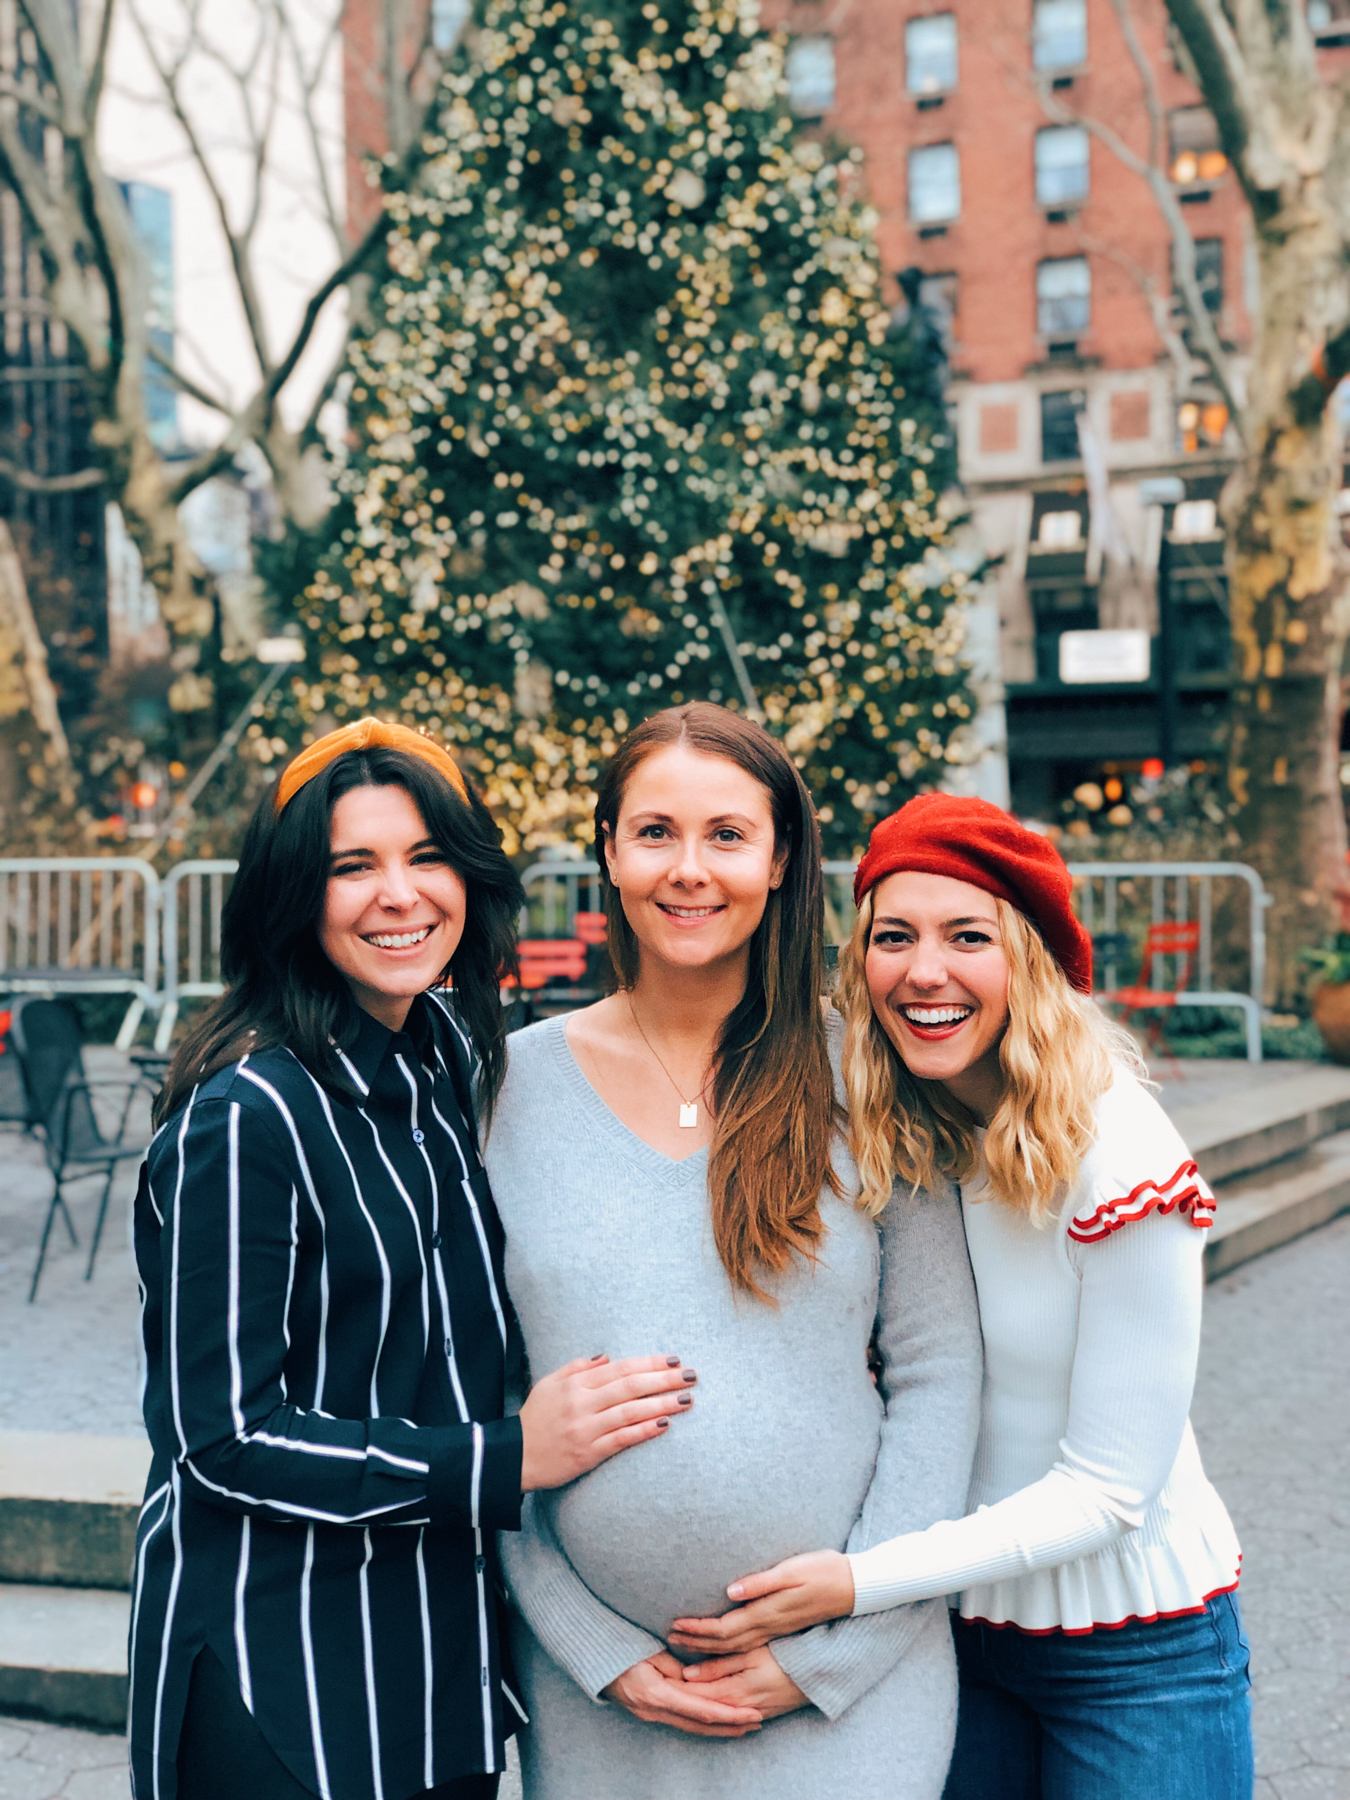 Haley, Kate, and I in front of the Christmas tree in Lincoln Square